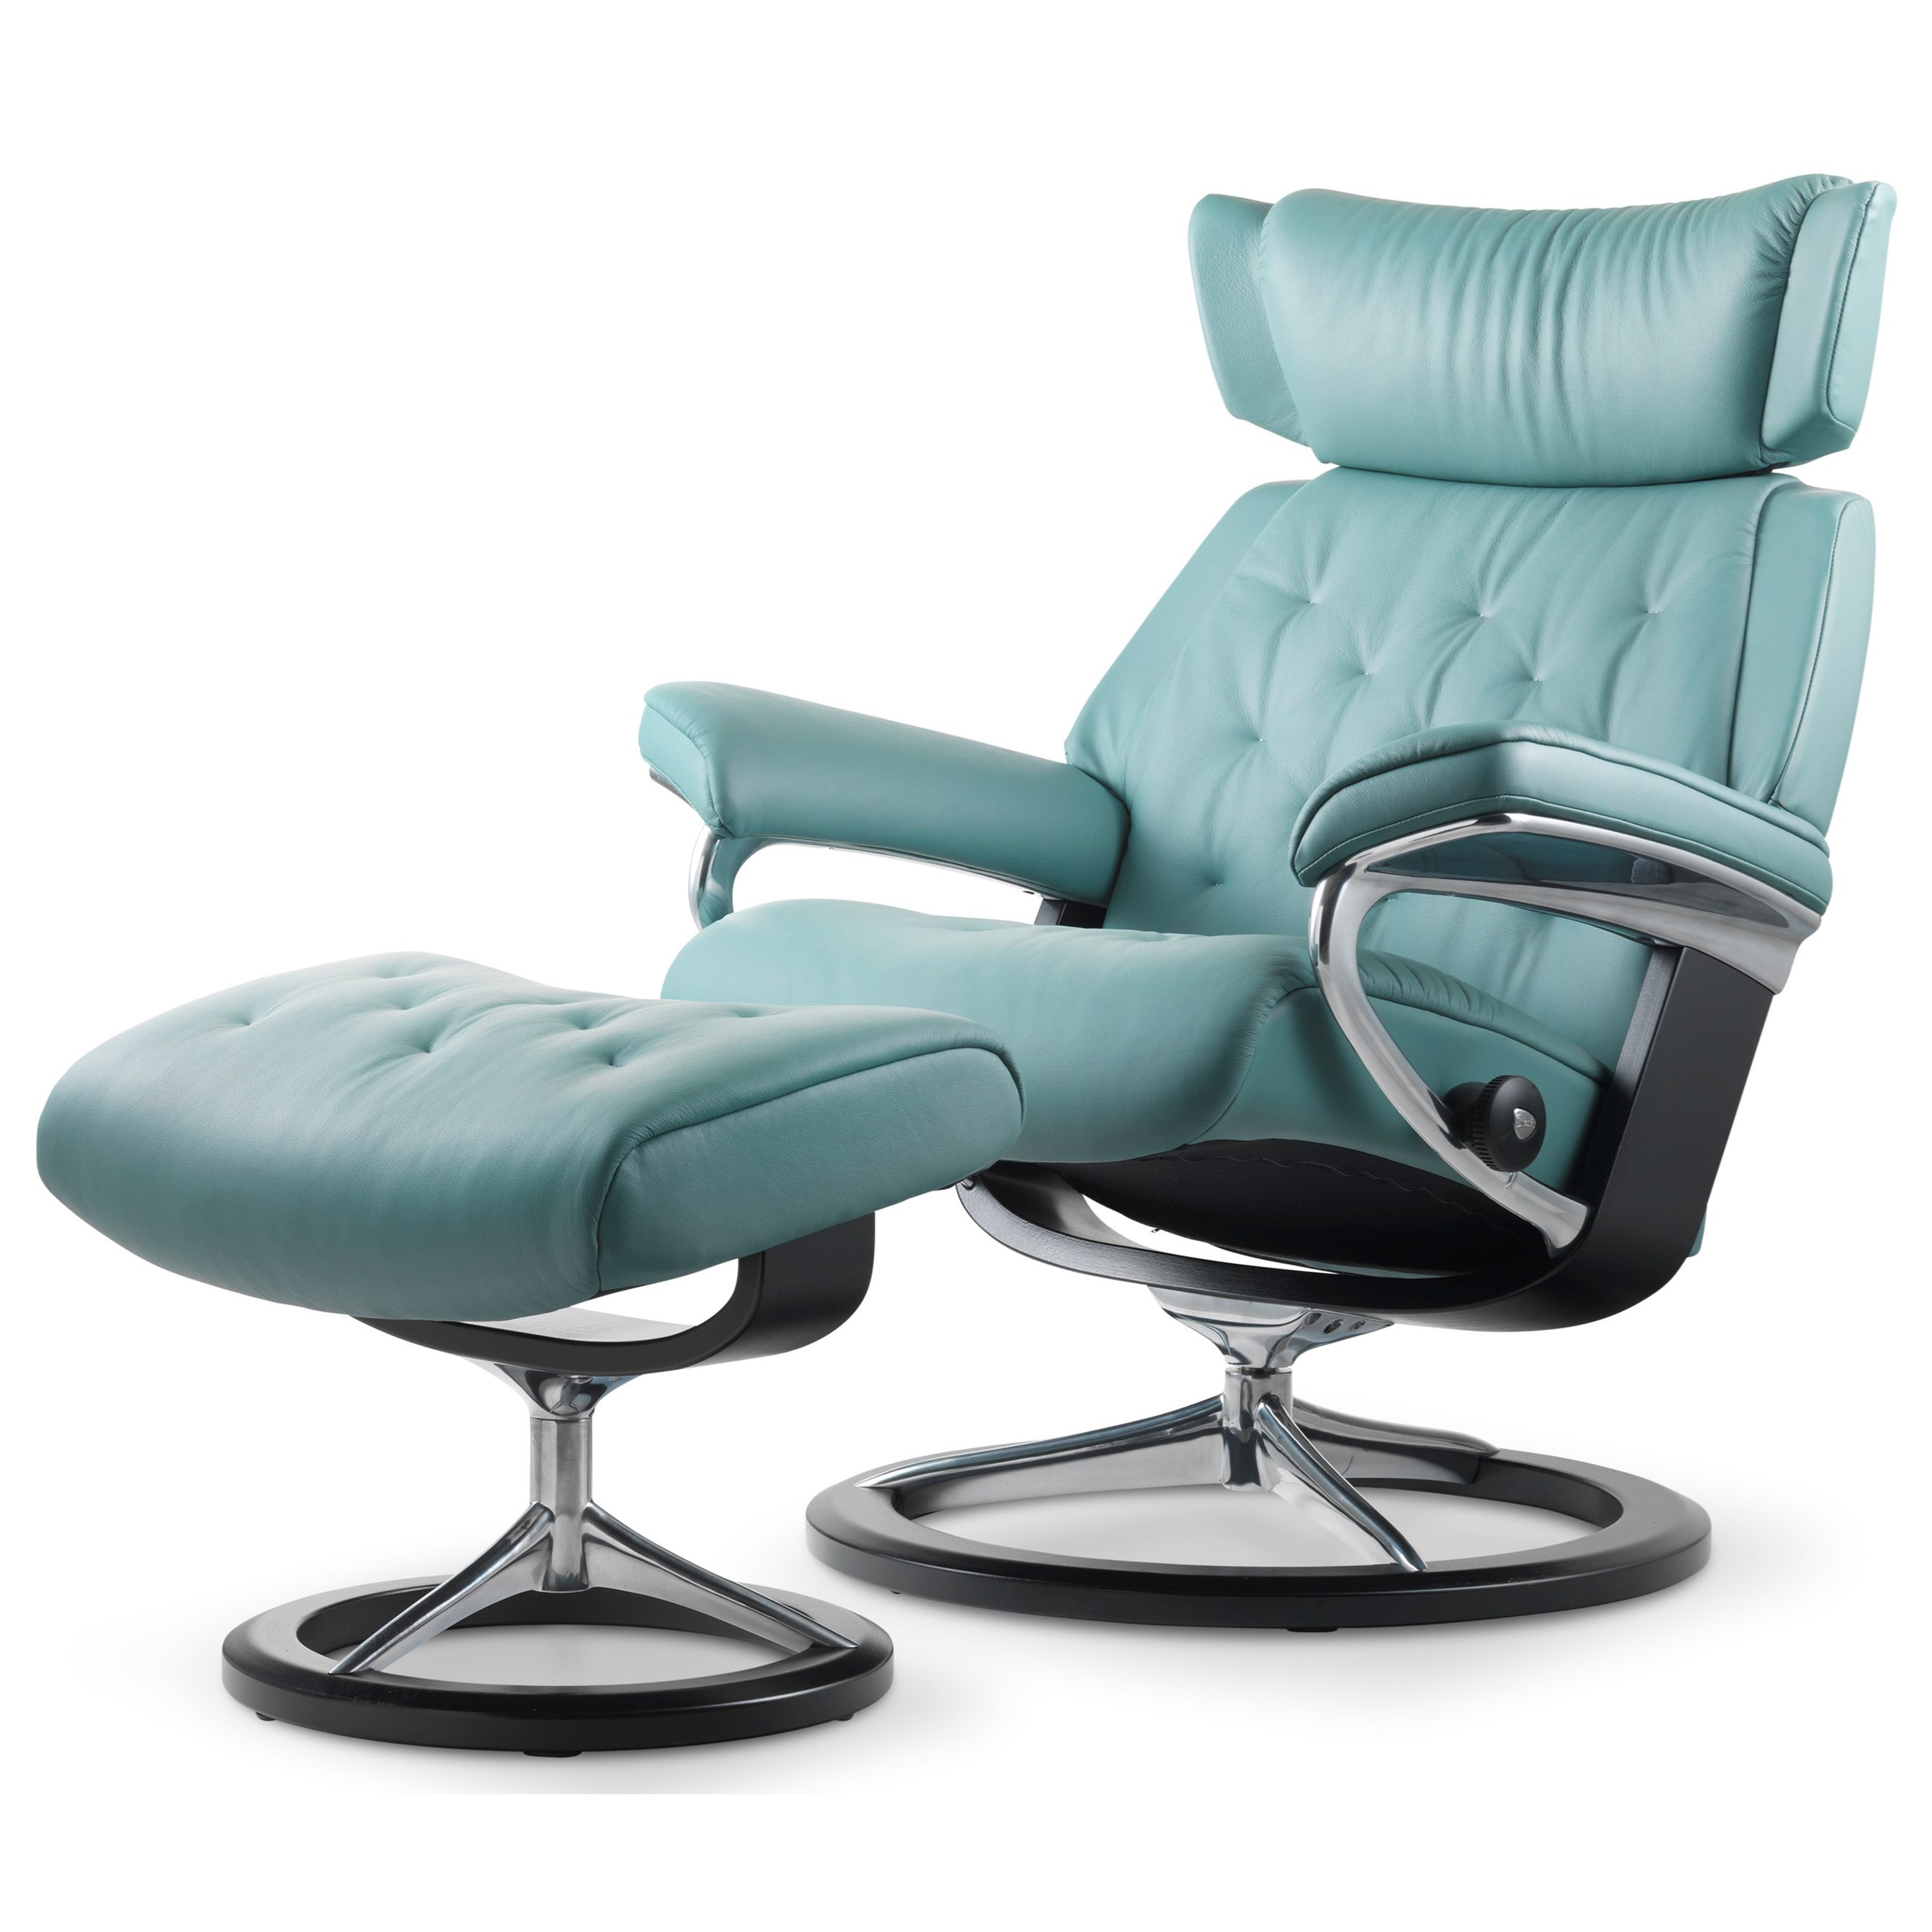 Small Chair With Ottoman: Stressless Skyline Small Reclining Chair & Ottoman With